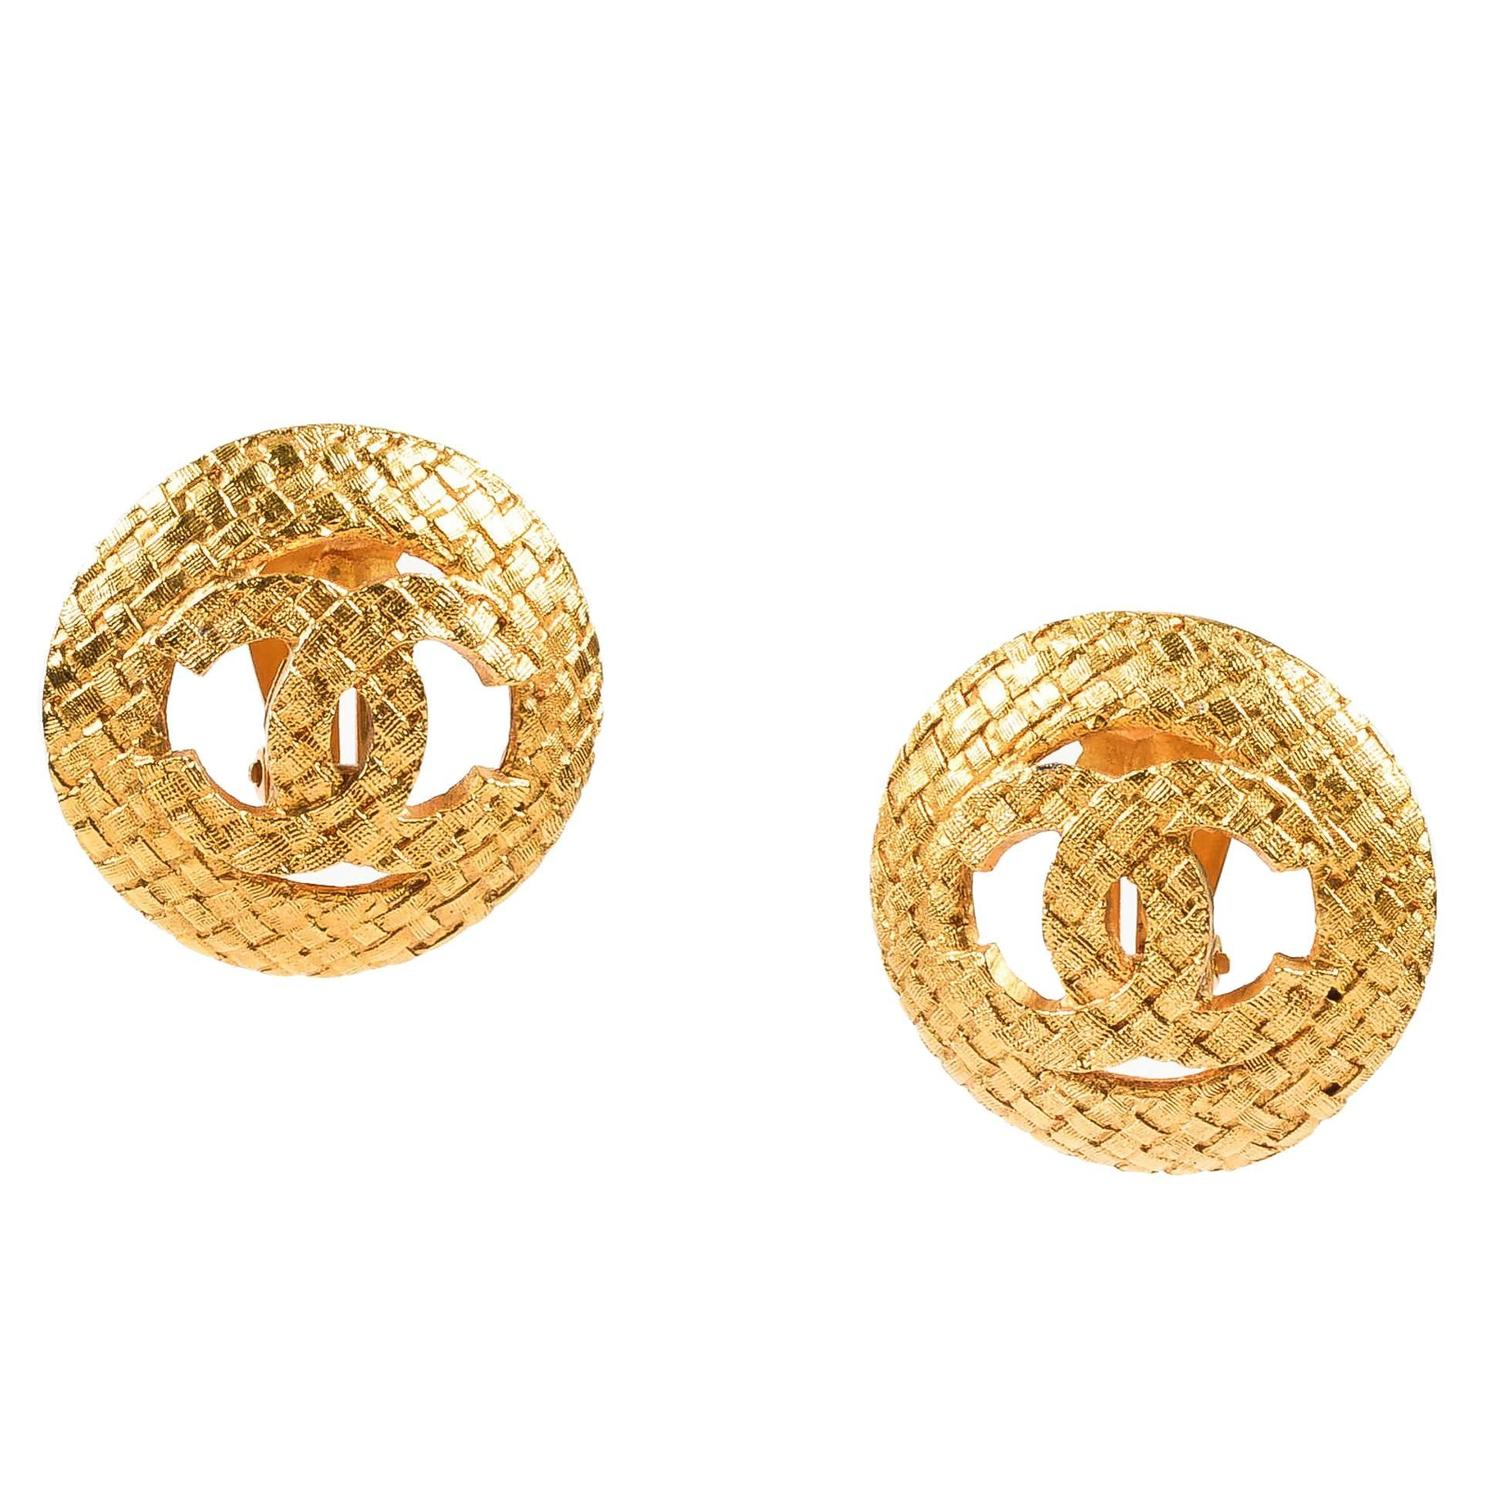 Vintage Chanel Gold Tone Textured Basketweave 'cc' Logo Clip On Earrings  For Sale At 1stdibs